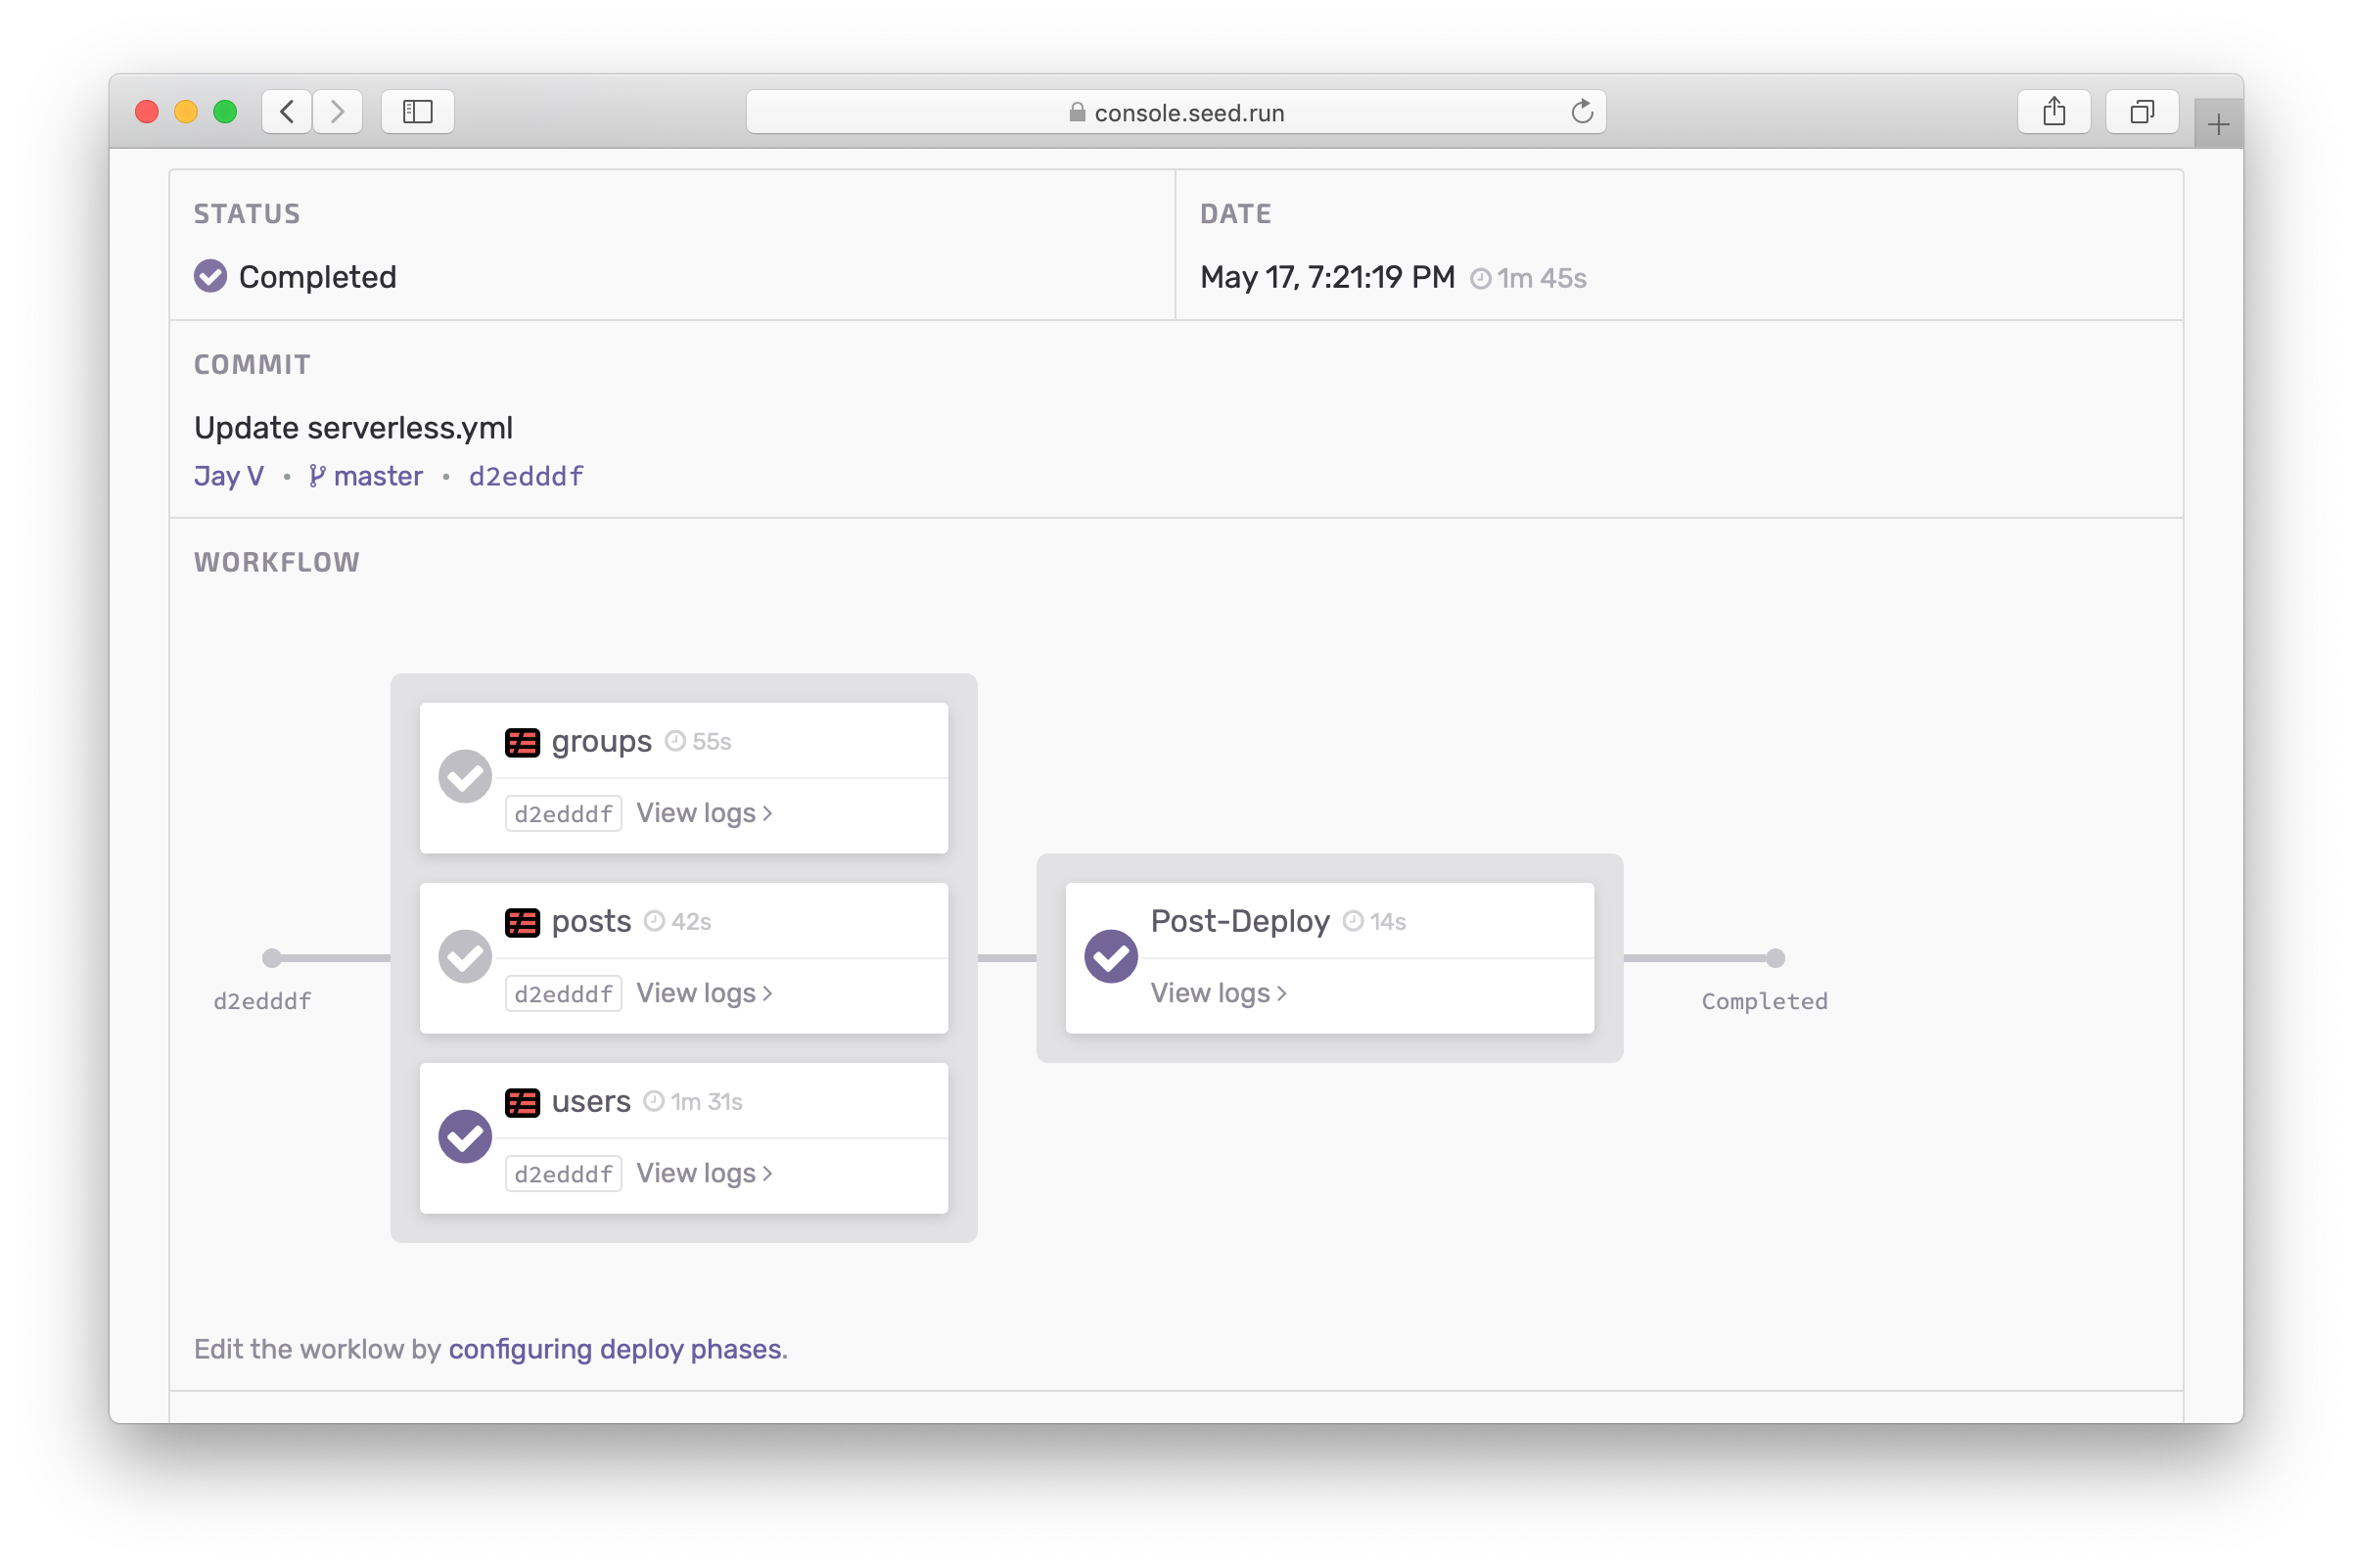 Build report panel with build times